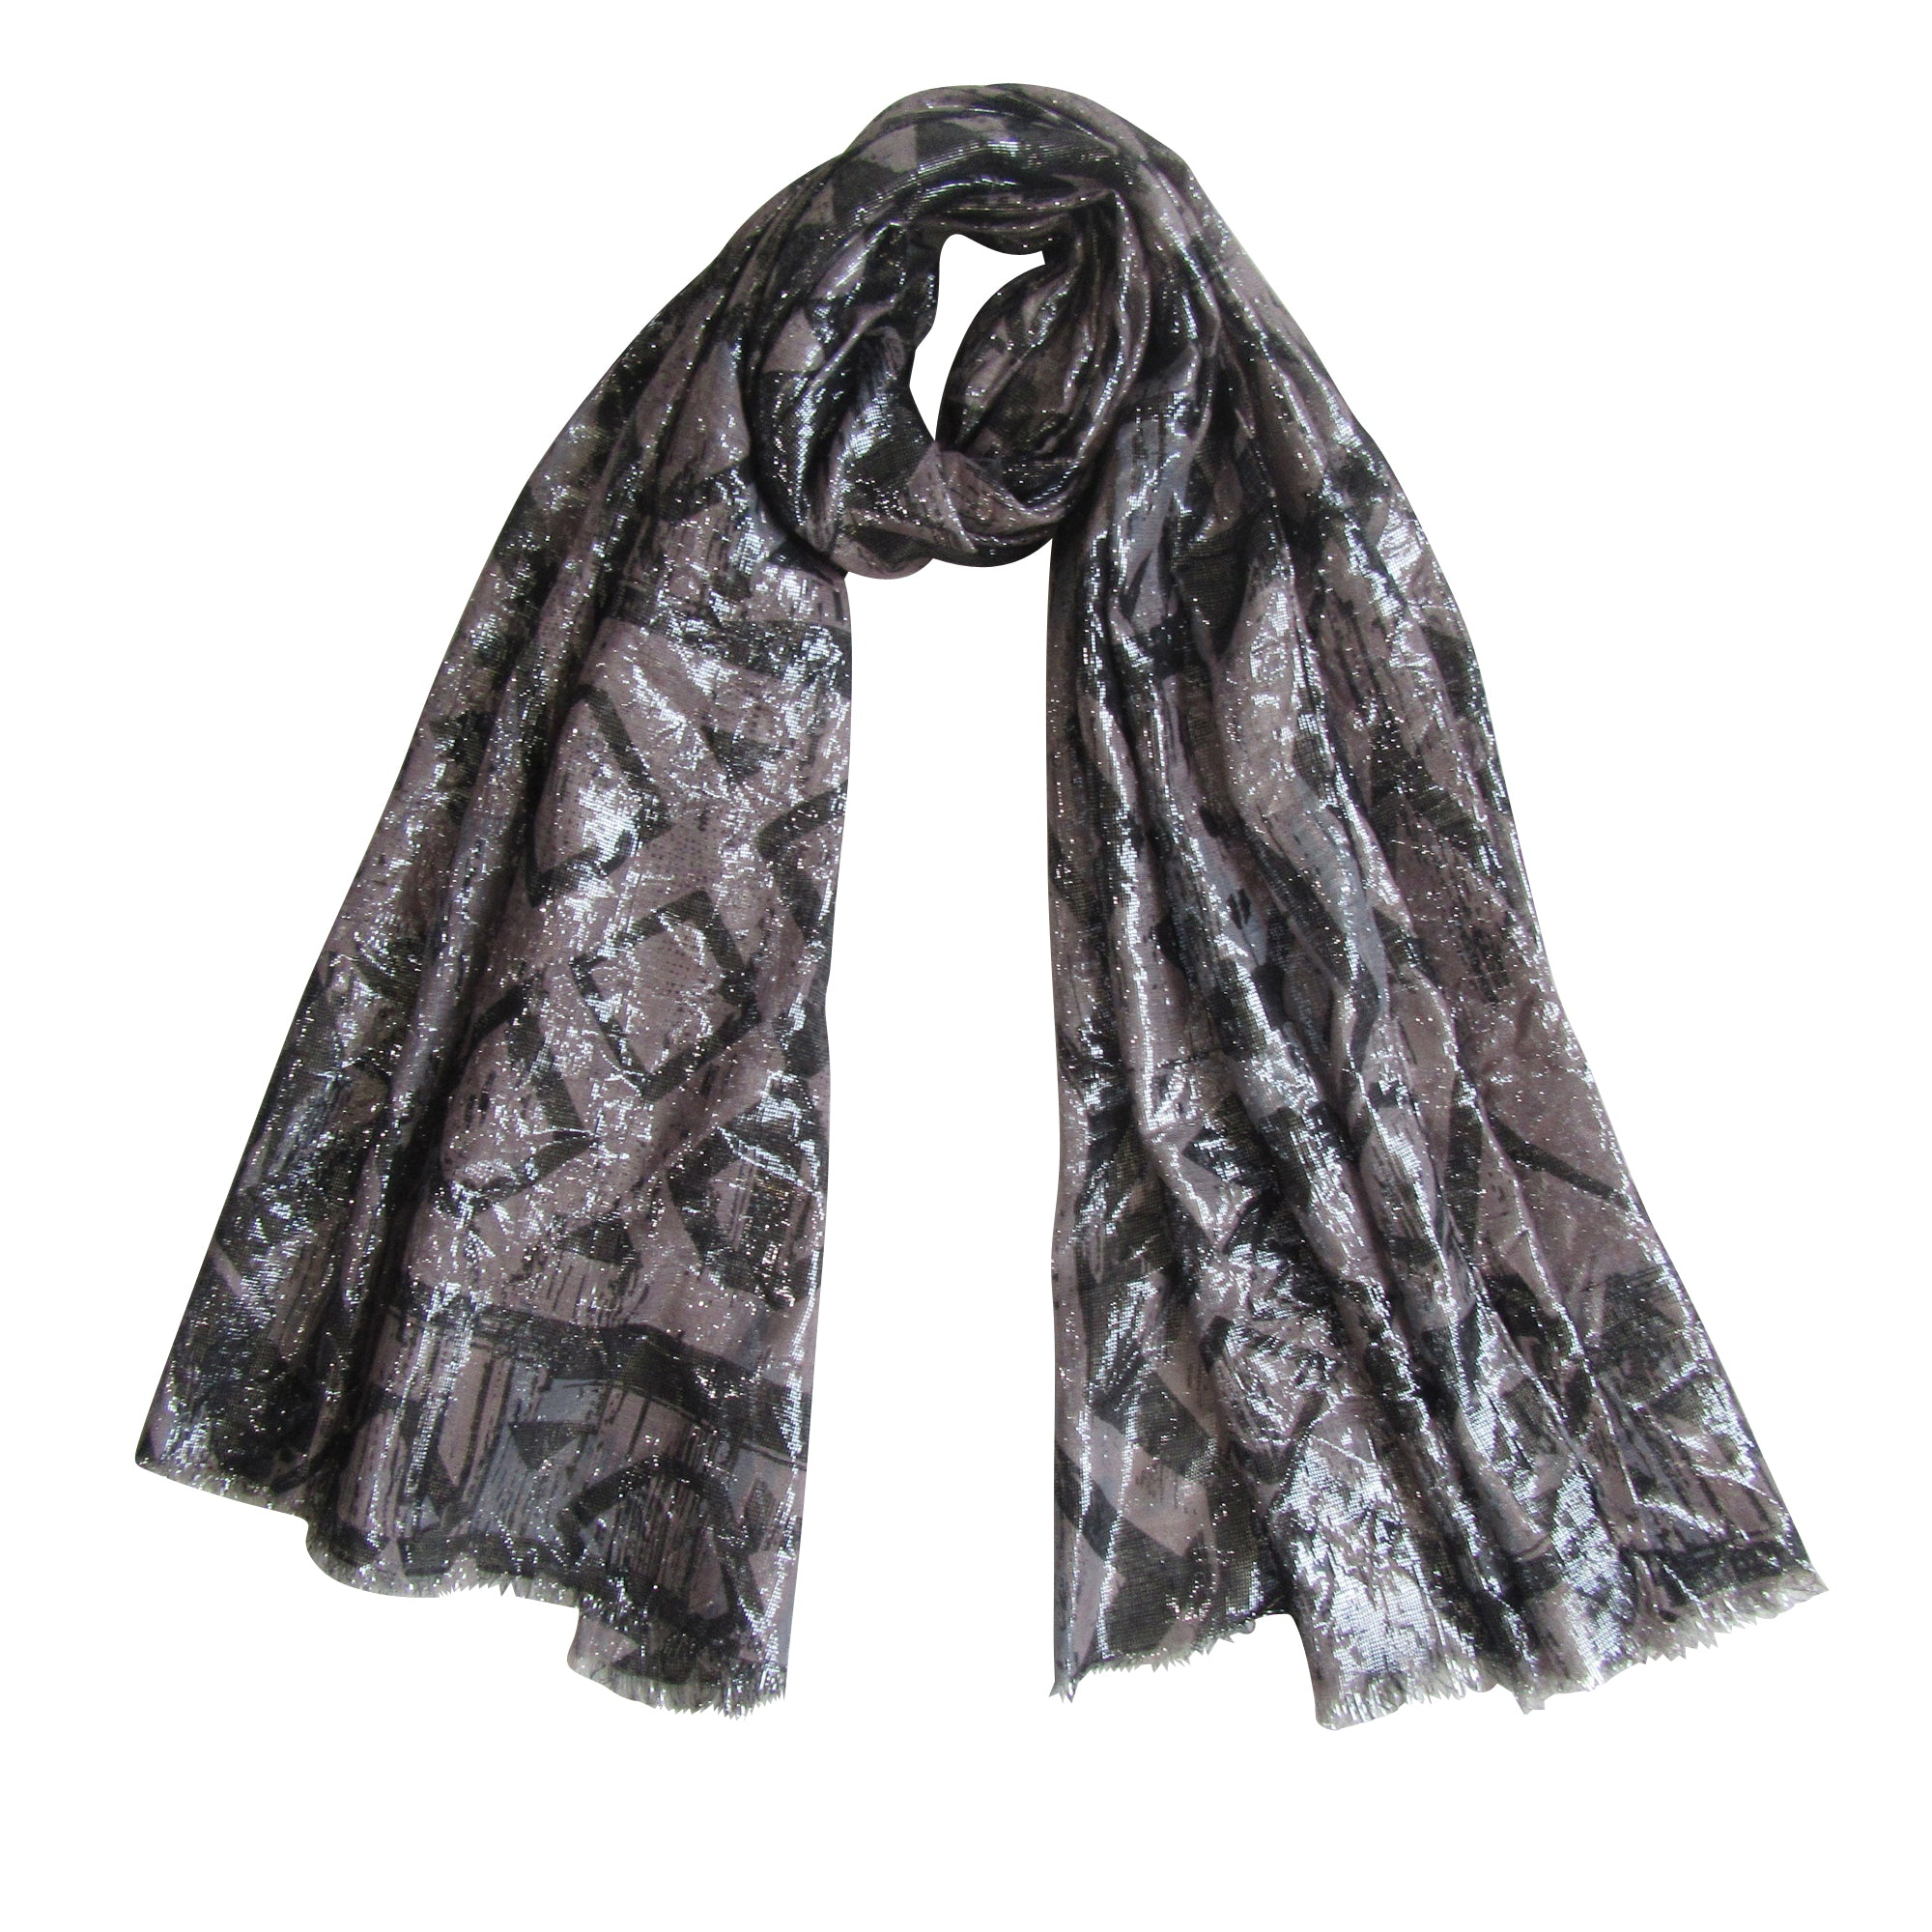 Lurex Evening Scarves; Design in Self